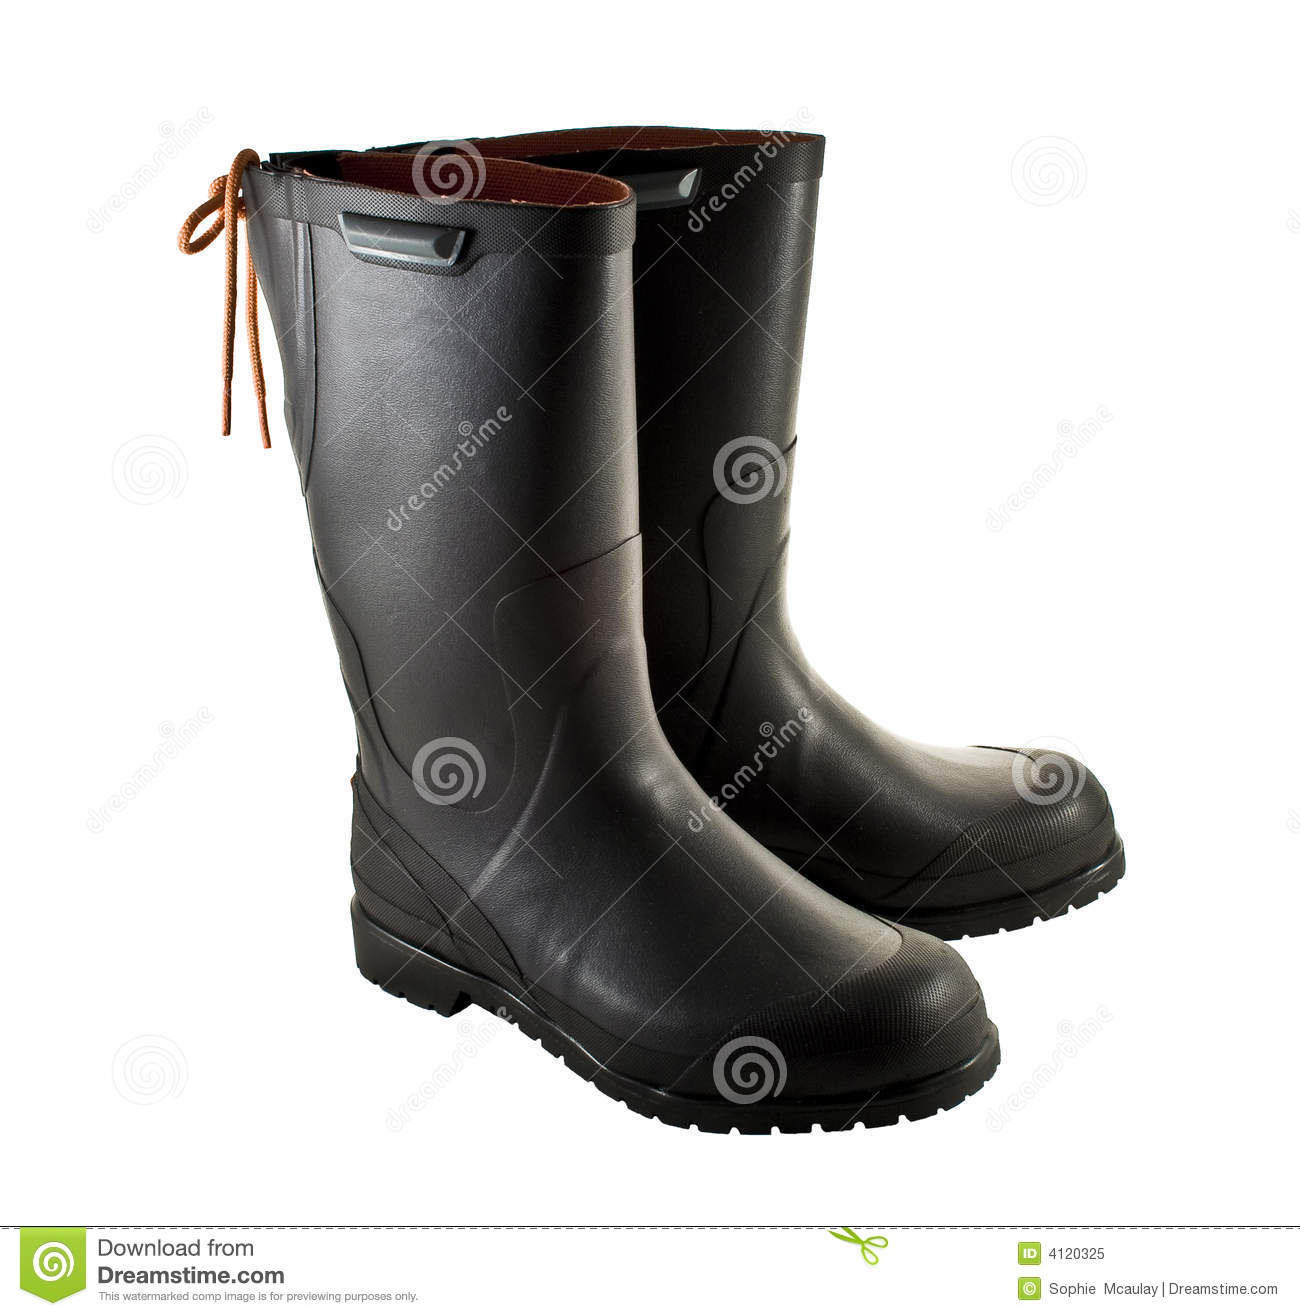 green Rubber boots isolated